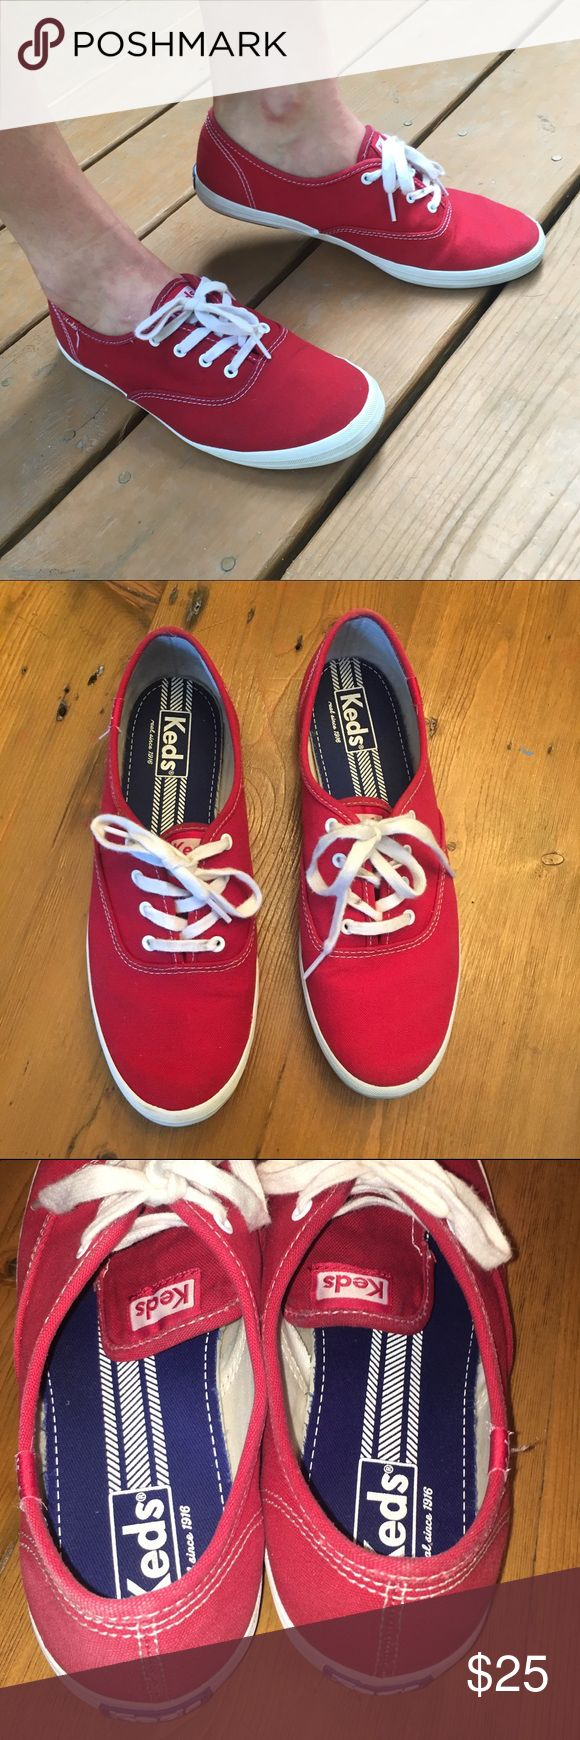 Classic Red Keds Sneakers Women's 8 Classic Red Keds Size 8. Worn once. Excellent condition. Keds Shoes Sneakers